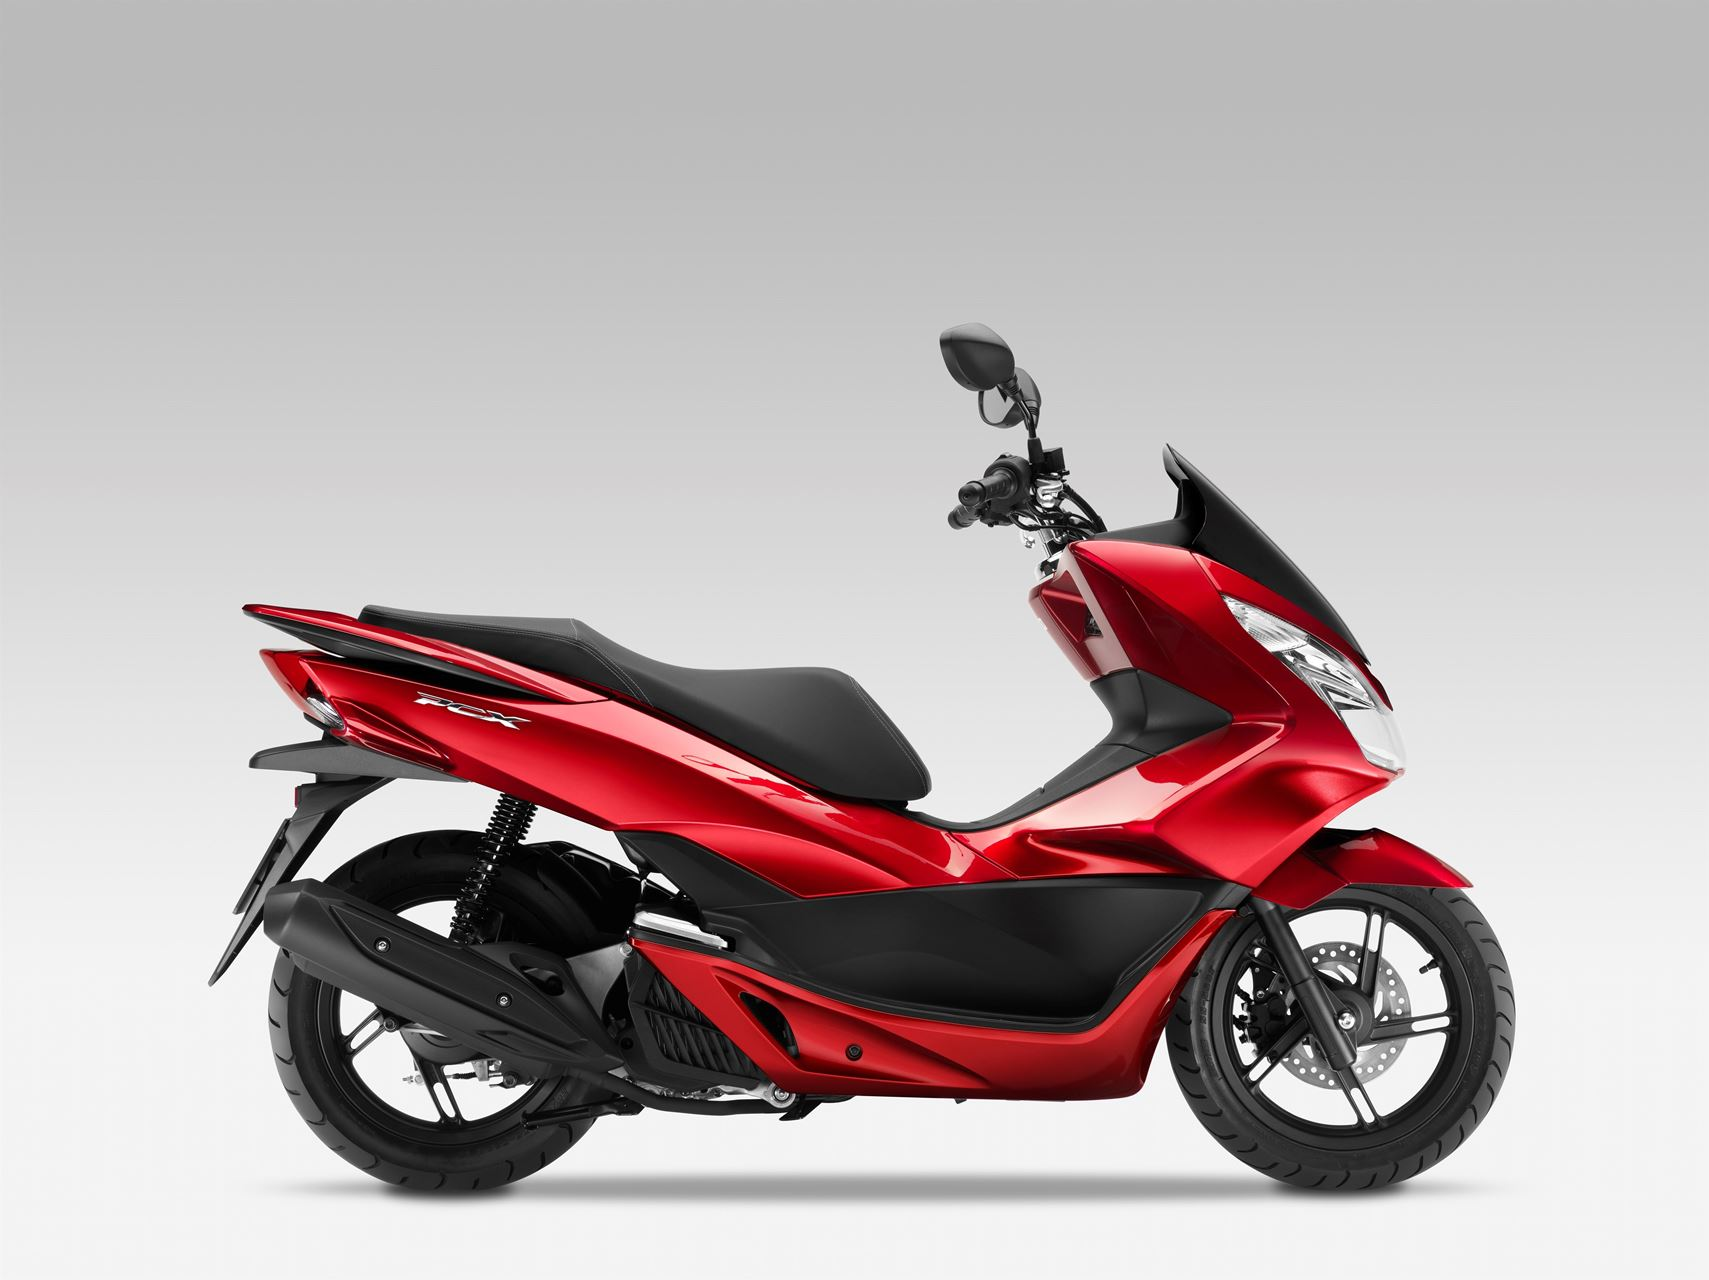 honda pcx 125 scooter scooters andar de moto. Black Bedroom Furniture Sets. Home Design Ideas